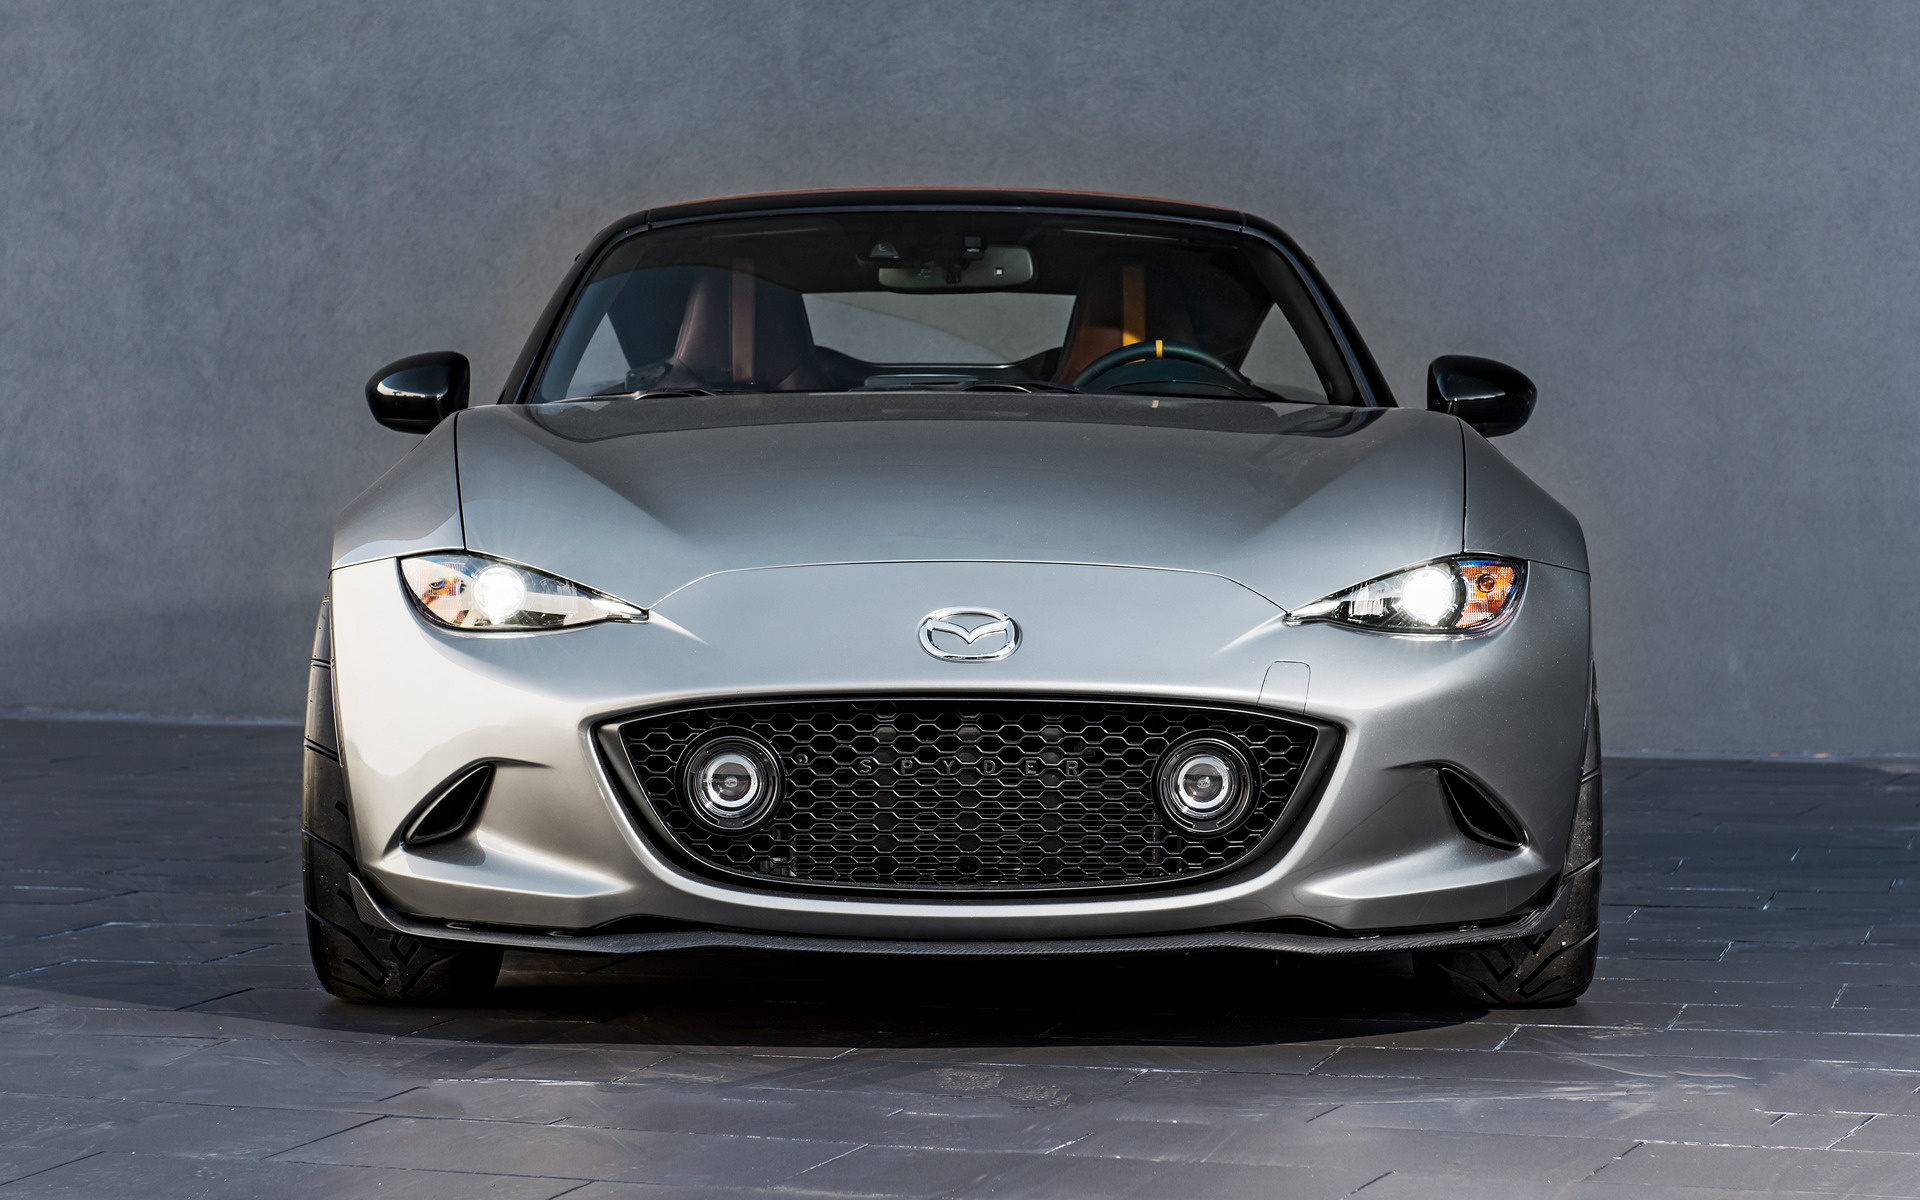 Mazda MX-5 Spyder Concept (2015) Wallpapers and HD Images - Car Pixel